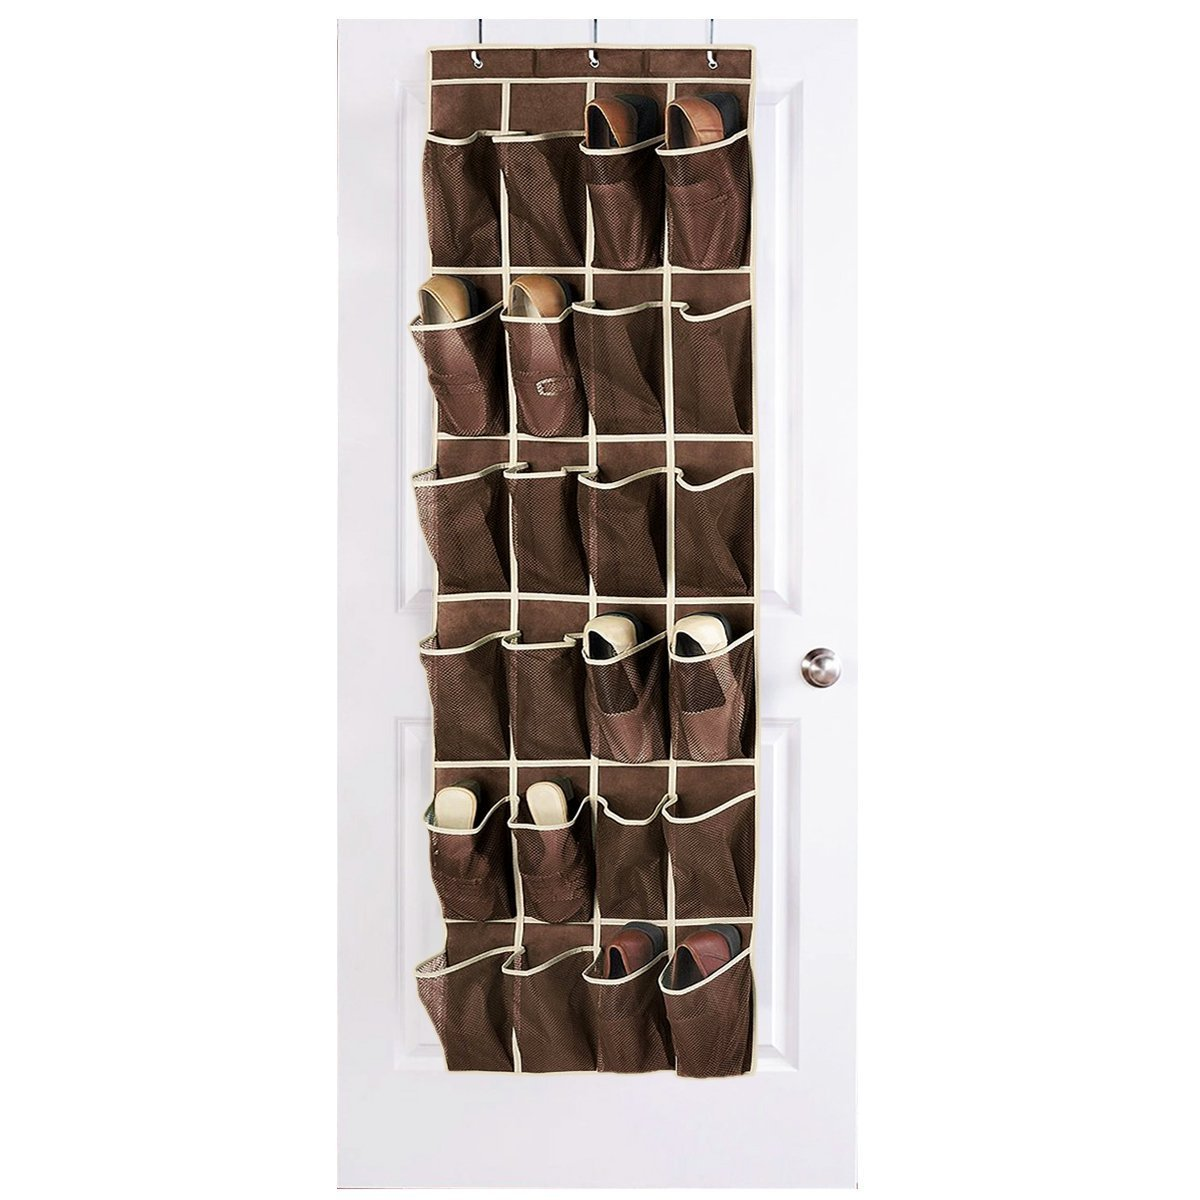 Hippih Over the Door Shoe Organizer with 24 Reinforced Pockets Hang on standard doors with 3 hooks,64\'\' x 19\'\'